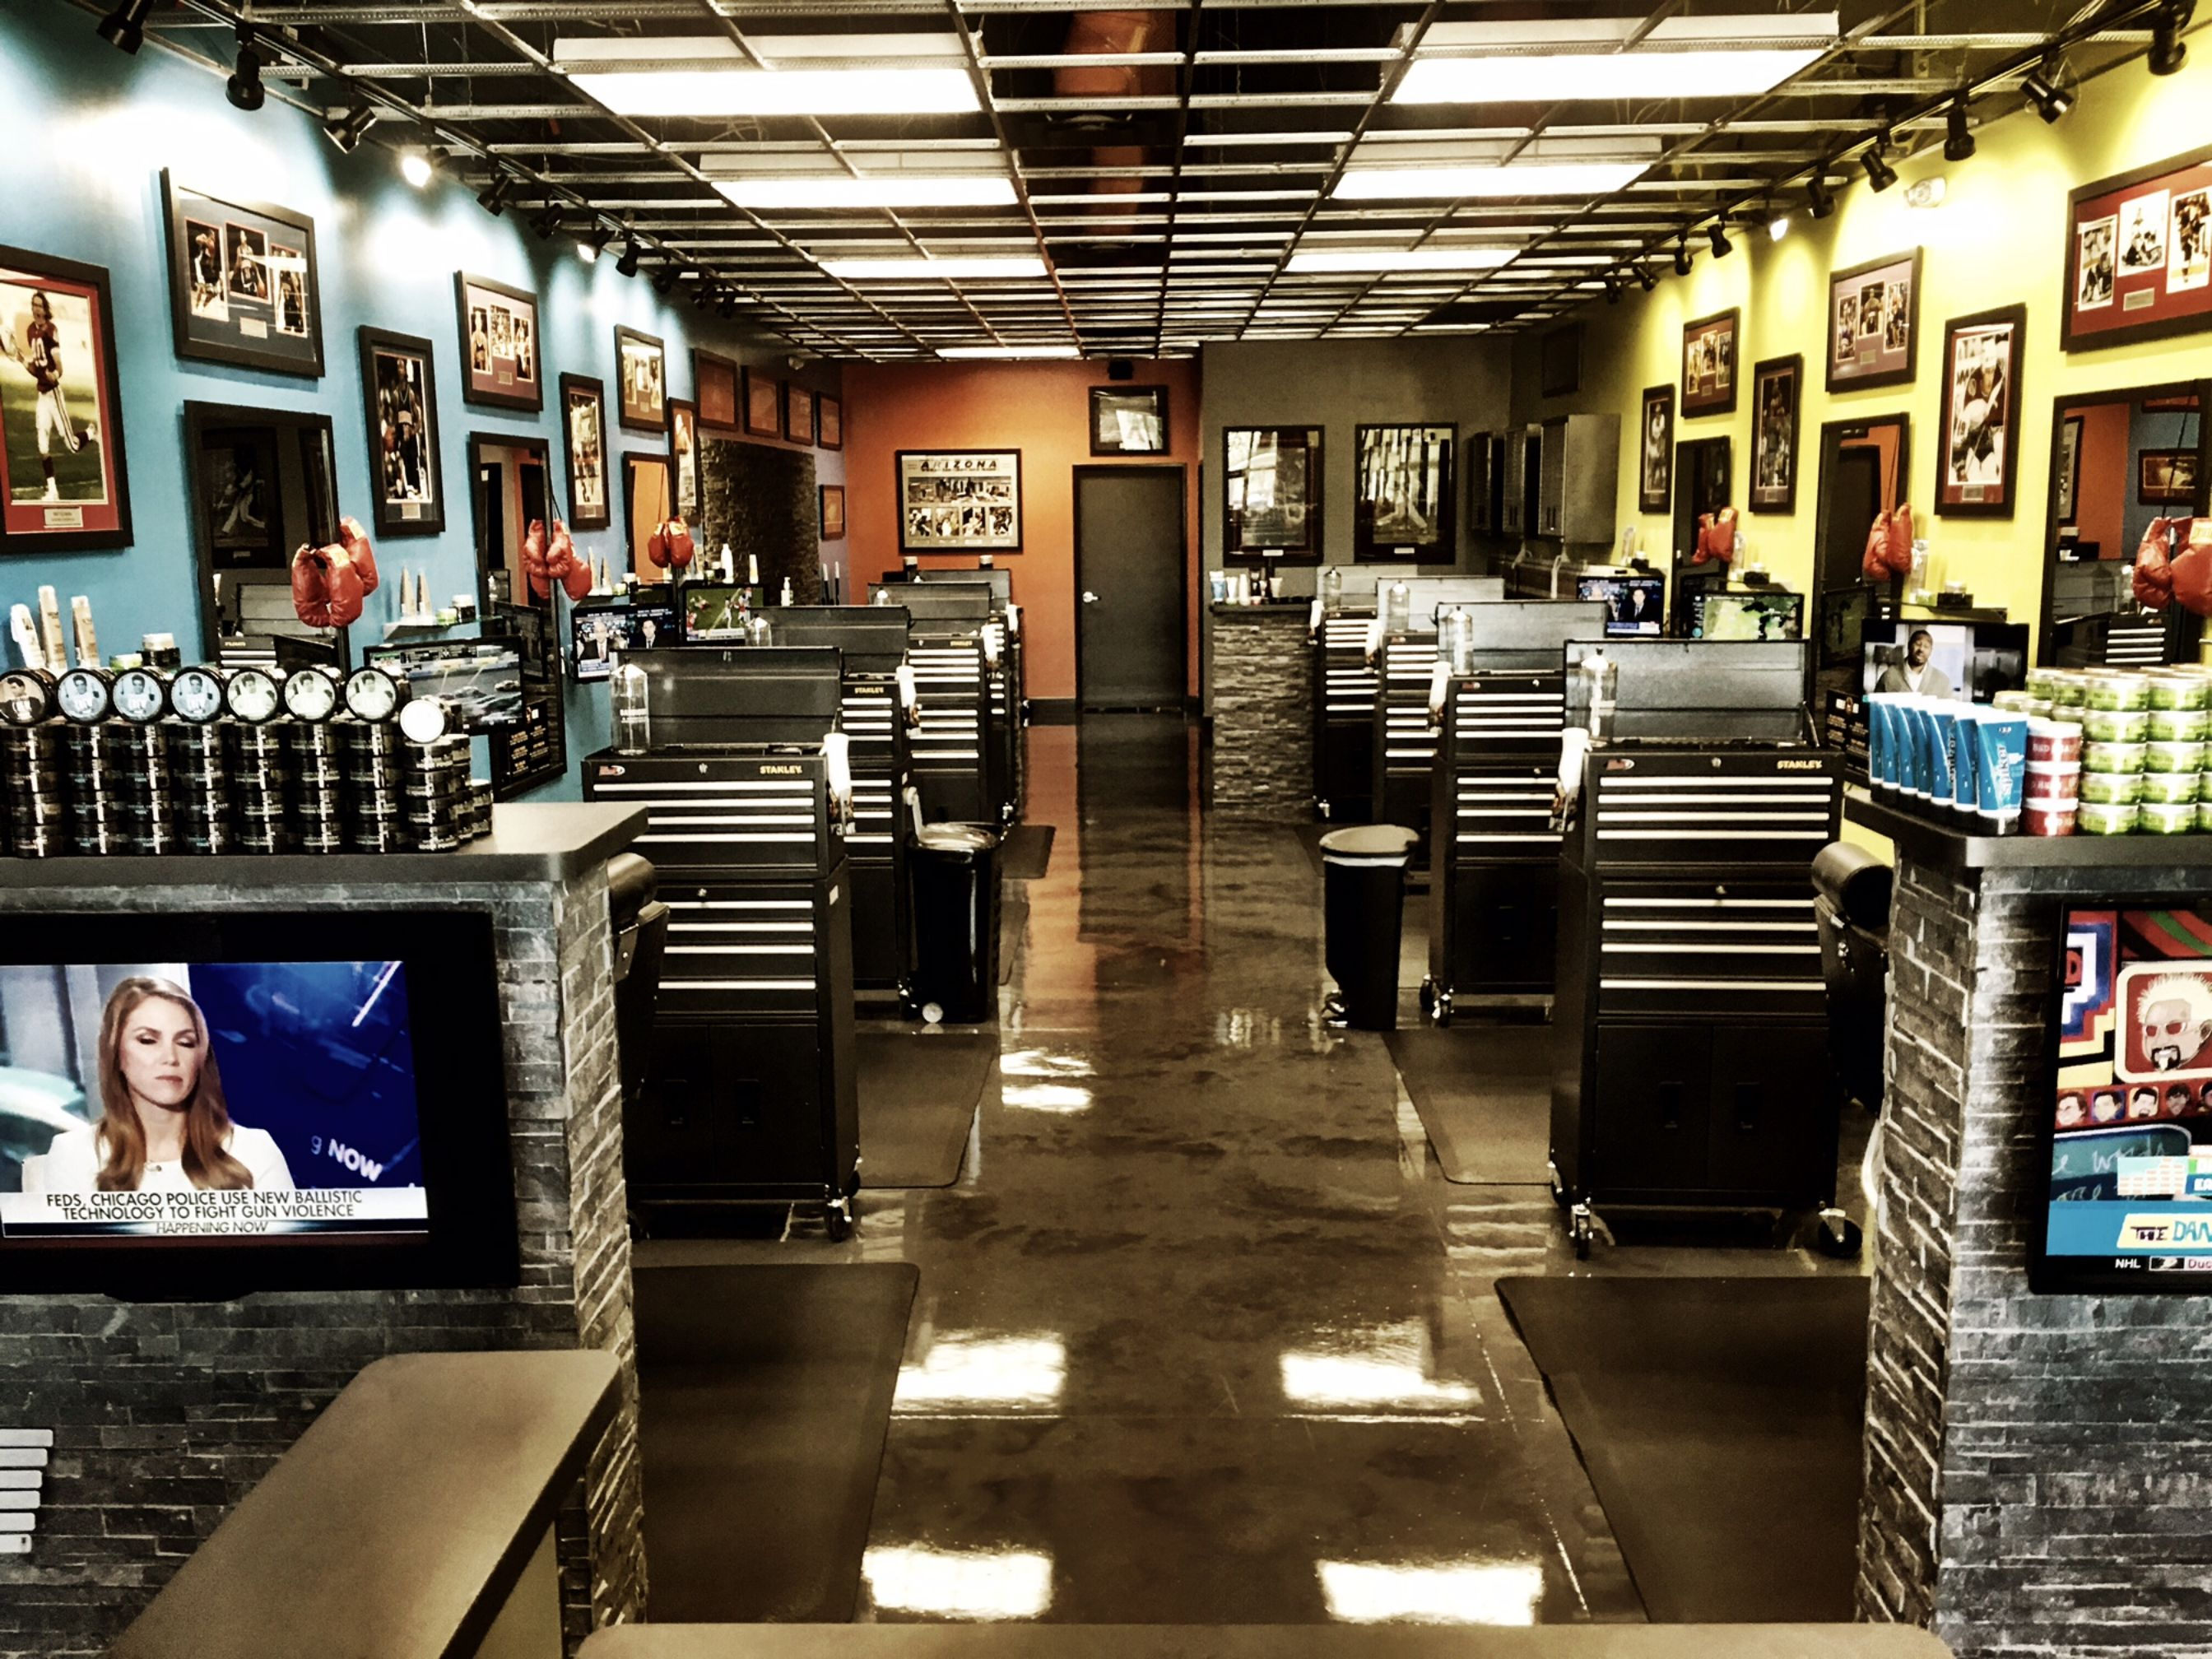 Lady Janes Haircuts for Men Cleaning up America One